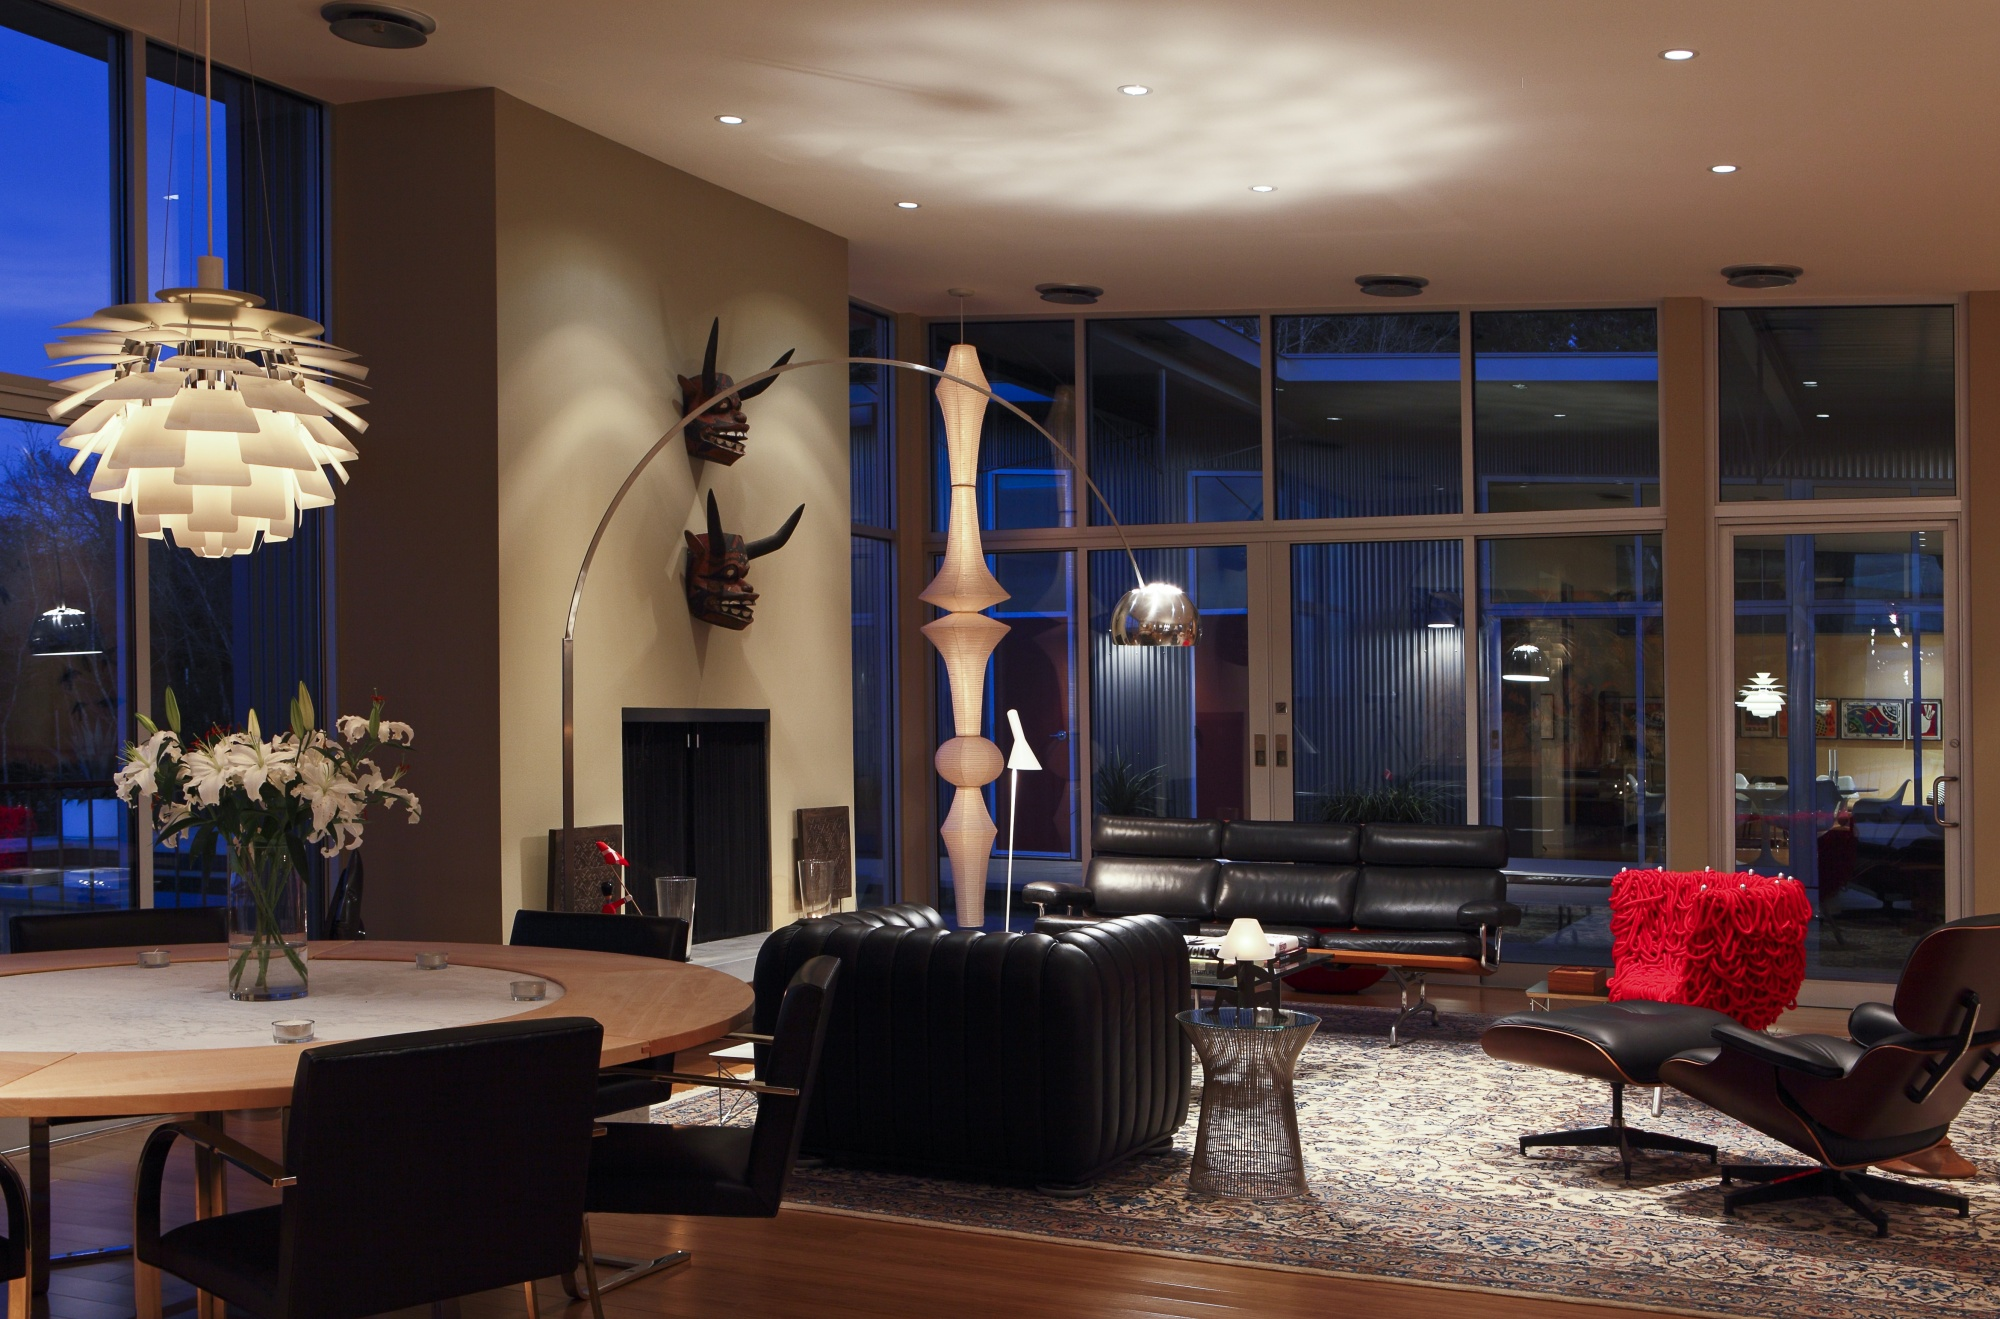 Low voltage lighting creates a warmth at night for lounging.